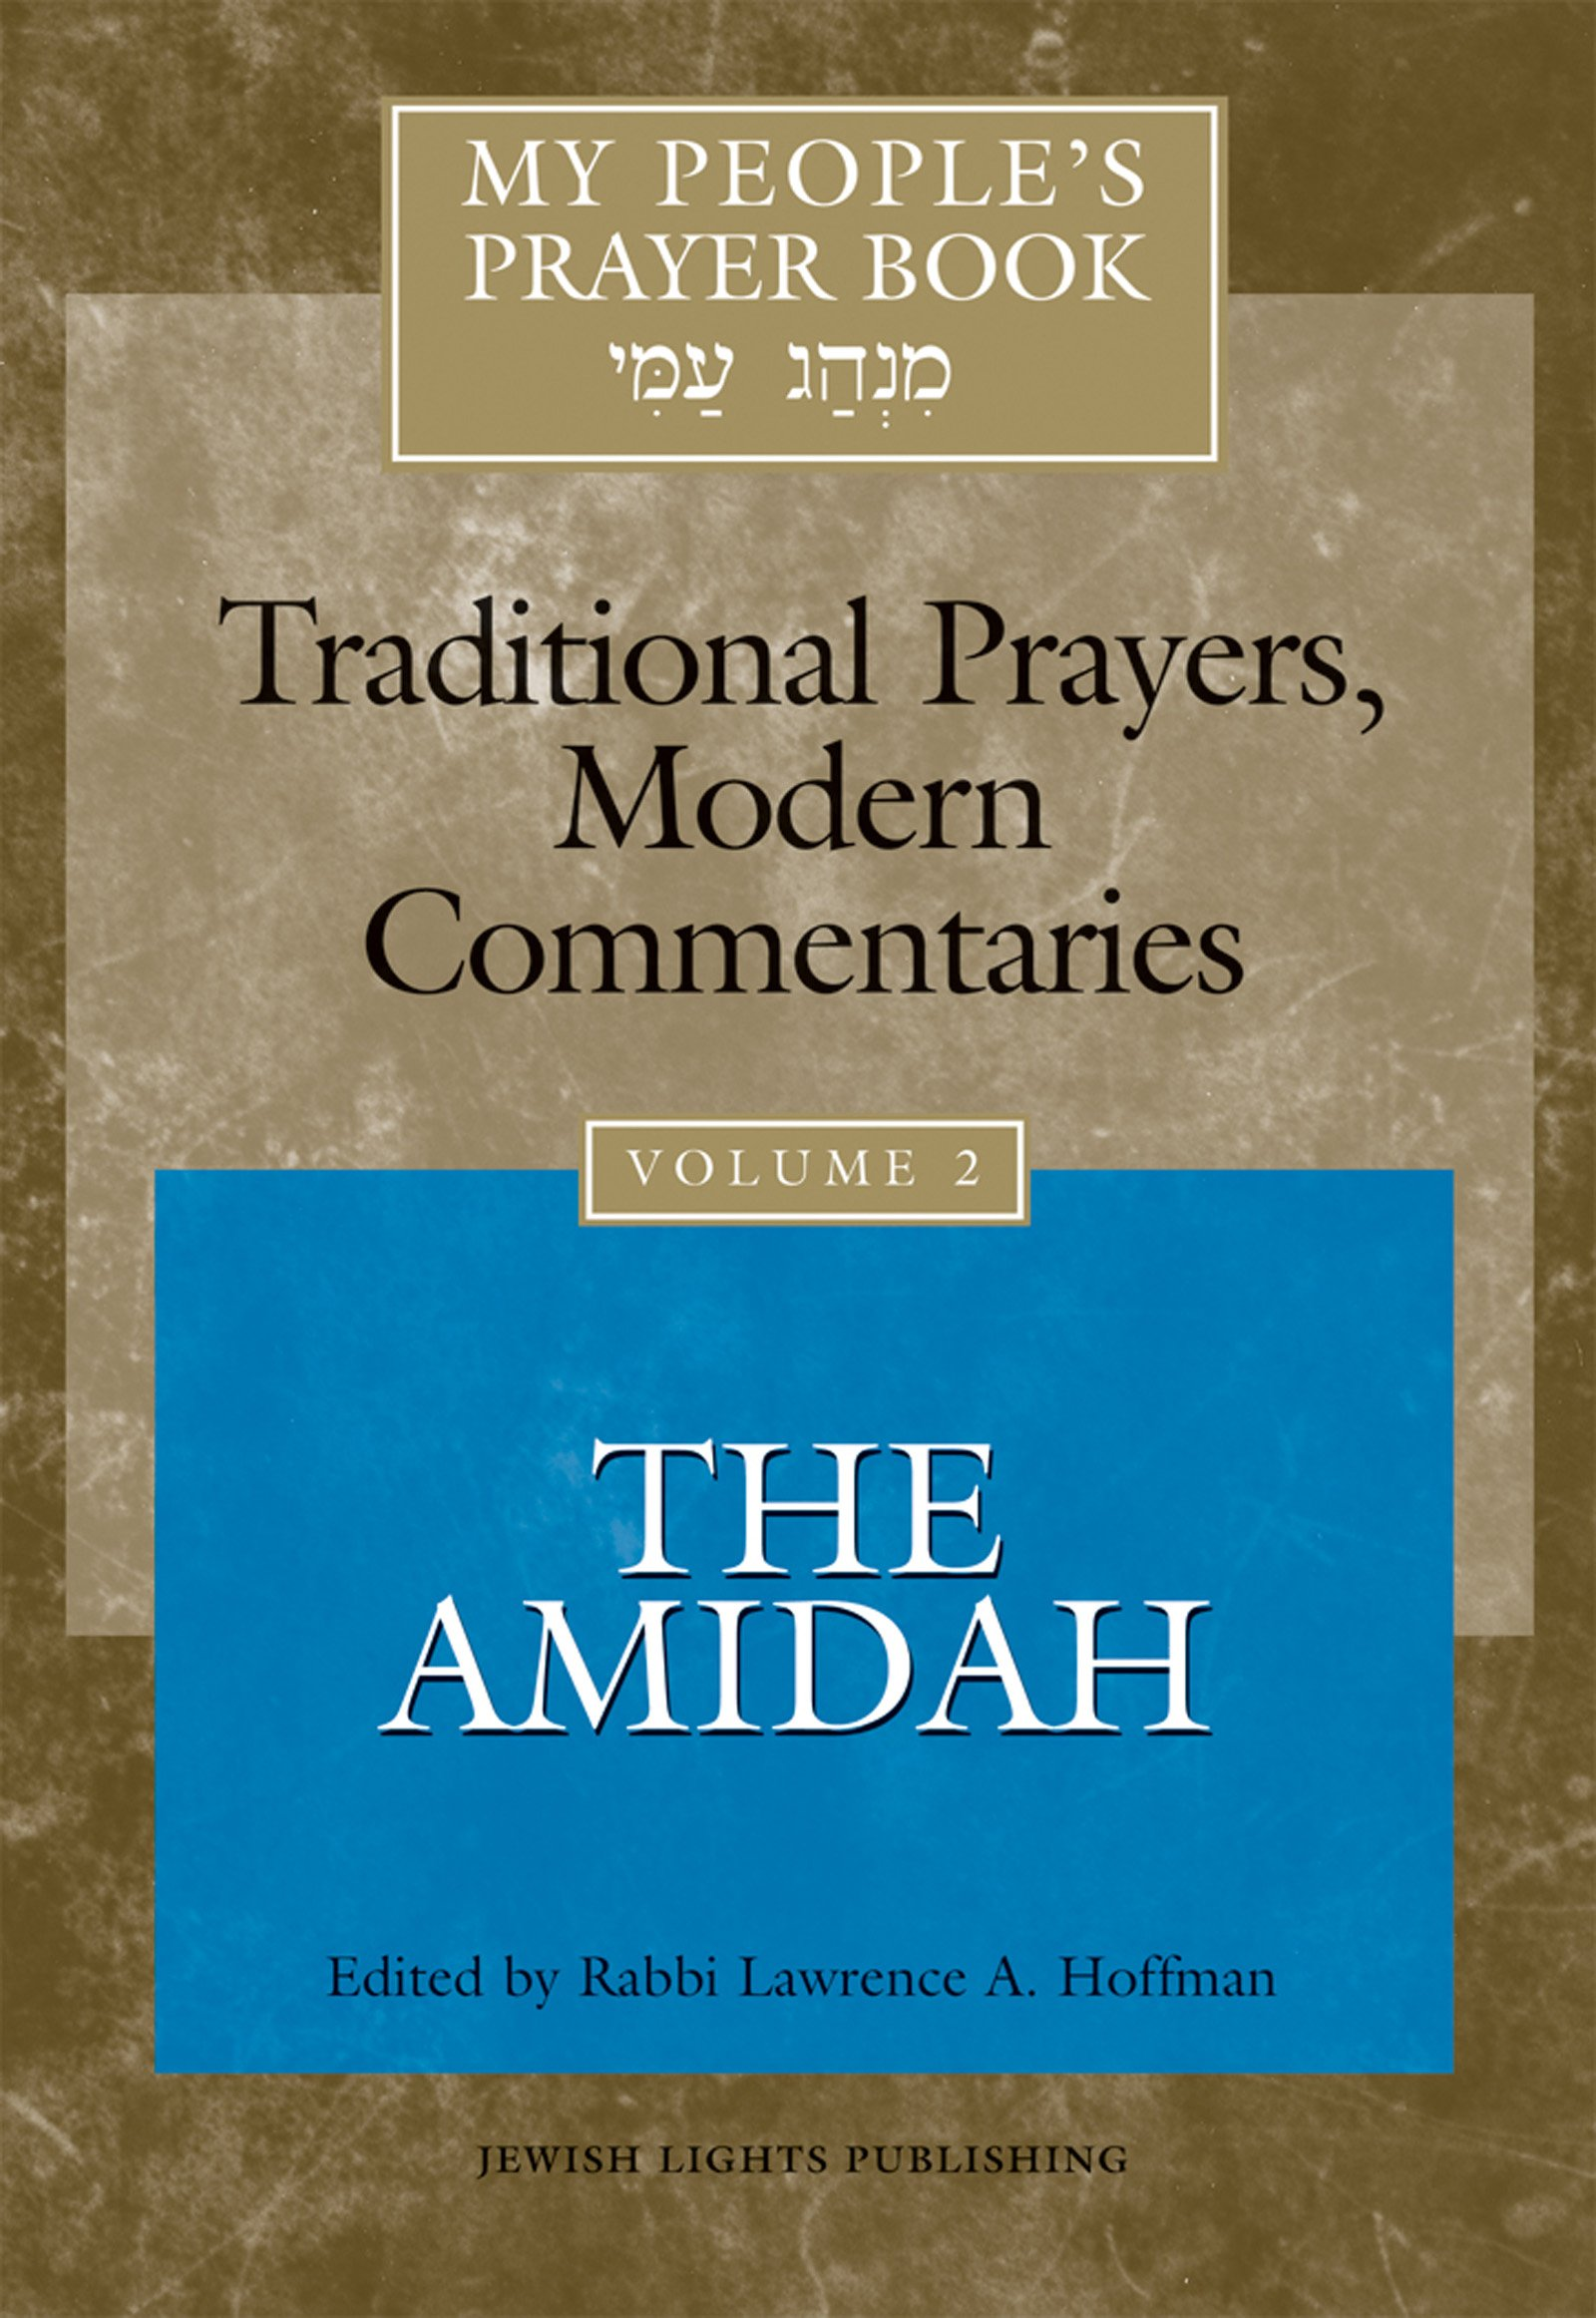 My People's Prayer Book Vol 2  The Amidah  Traditional Prayers Modern Commentaries